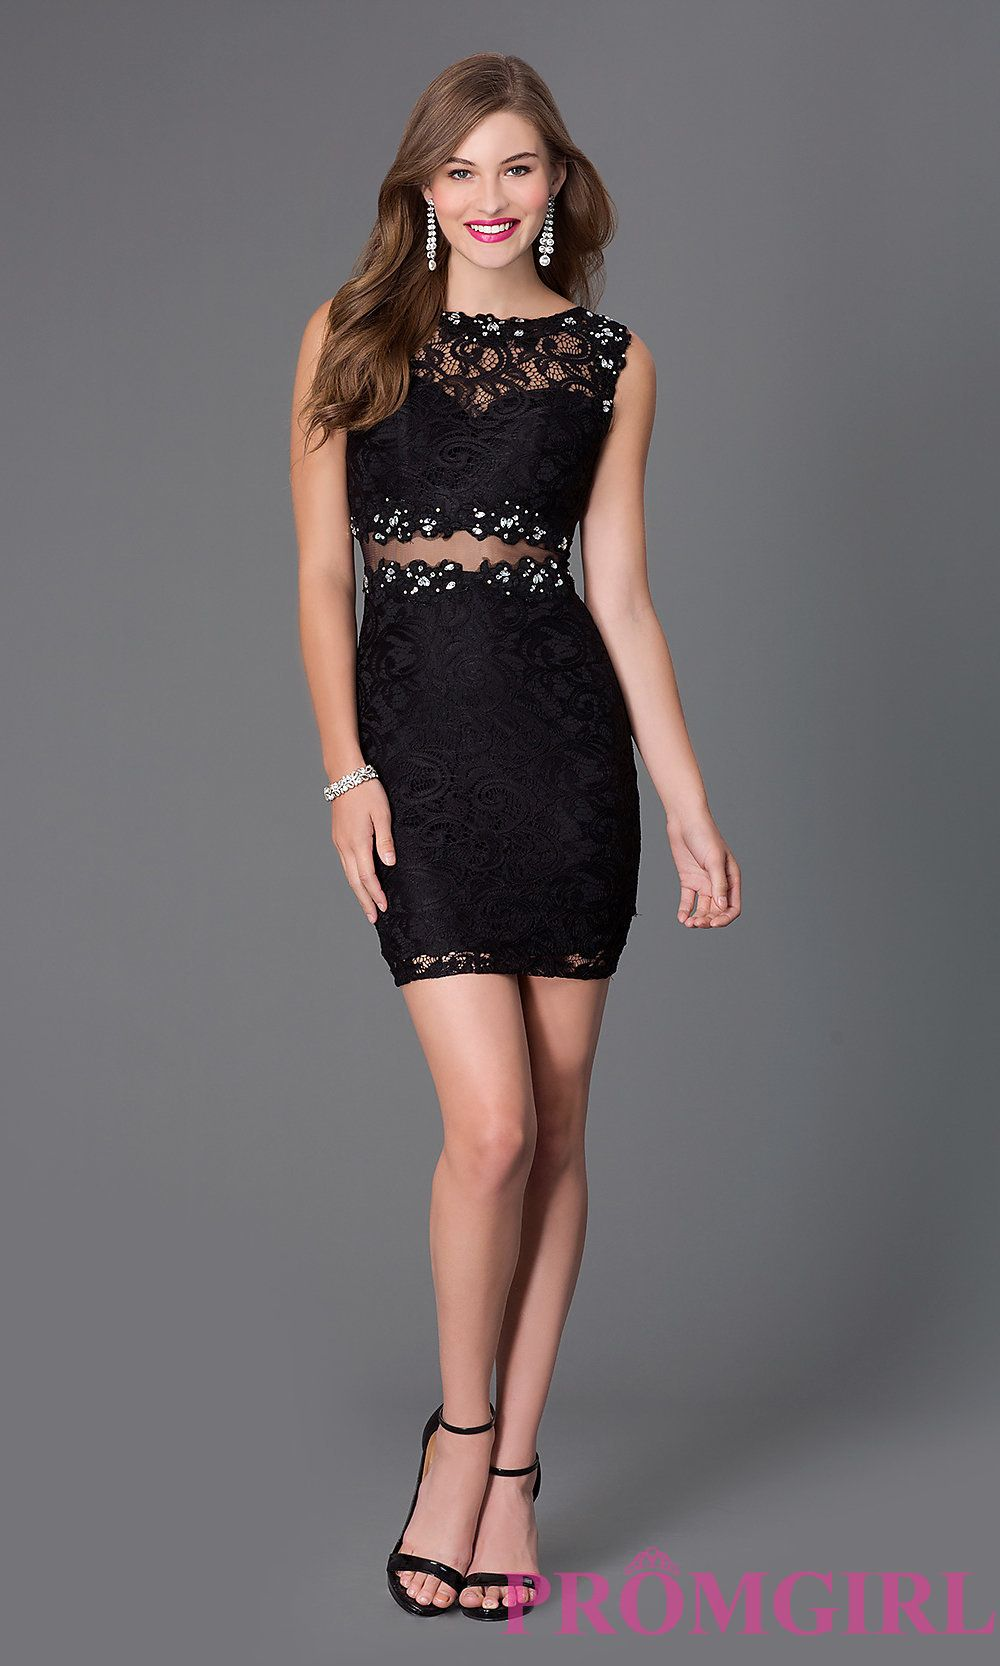 Sheer Lace Cocktail Dress 9099 Cocktail Dress Lace Homecoming Dresses Short Tight Lace Party Dresses [ 1666 x 1000 Pixel ]